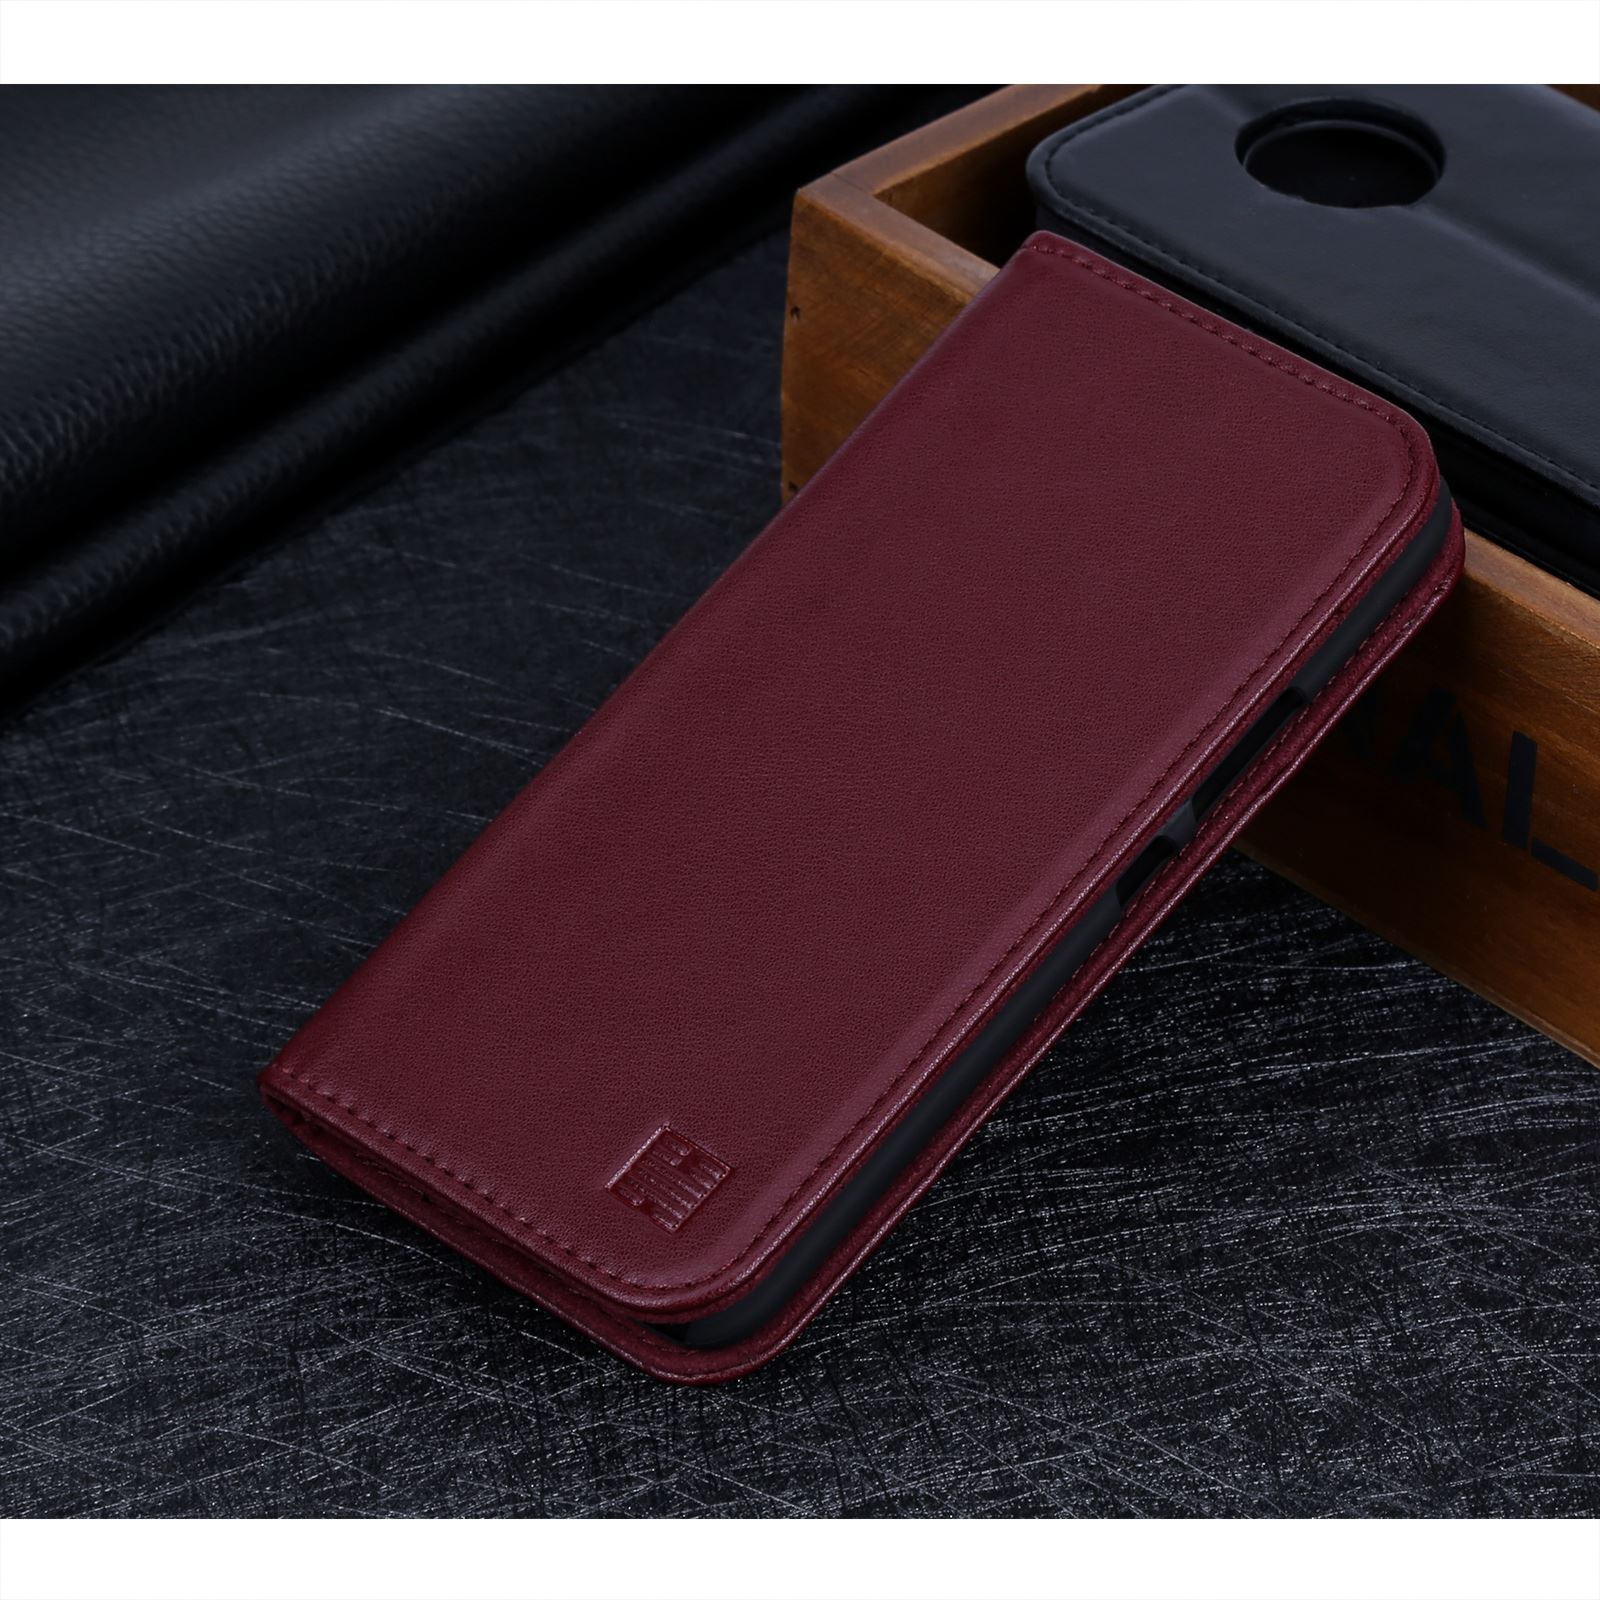 the best attitude 466c2 e2852 Details about 32nd Classic Series - Real Leather Book Wallet Case For  Motorola Moto X4 (2017)